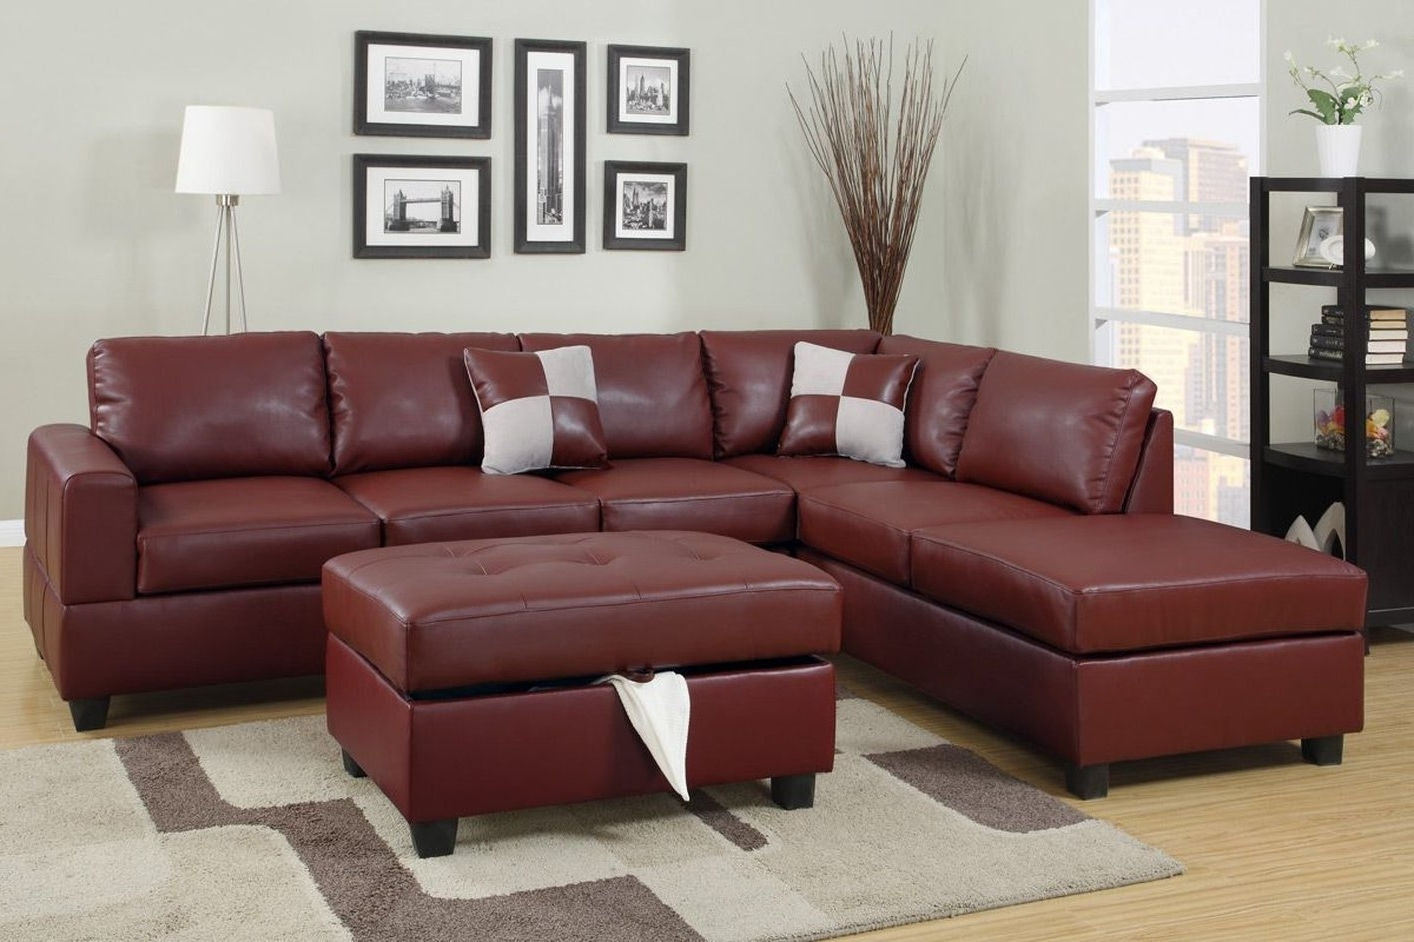 April Red Leather Sectional Sofa And Ottoman – Steal A Sofa Pertaining To Best And Newest Red Leather Sectional Couches (View 3 of 15)